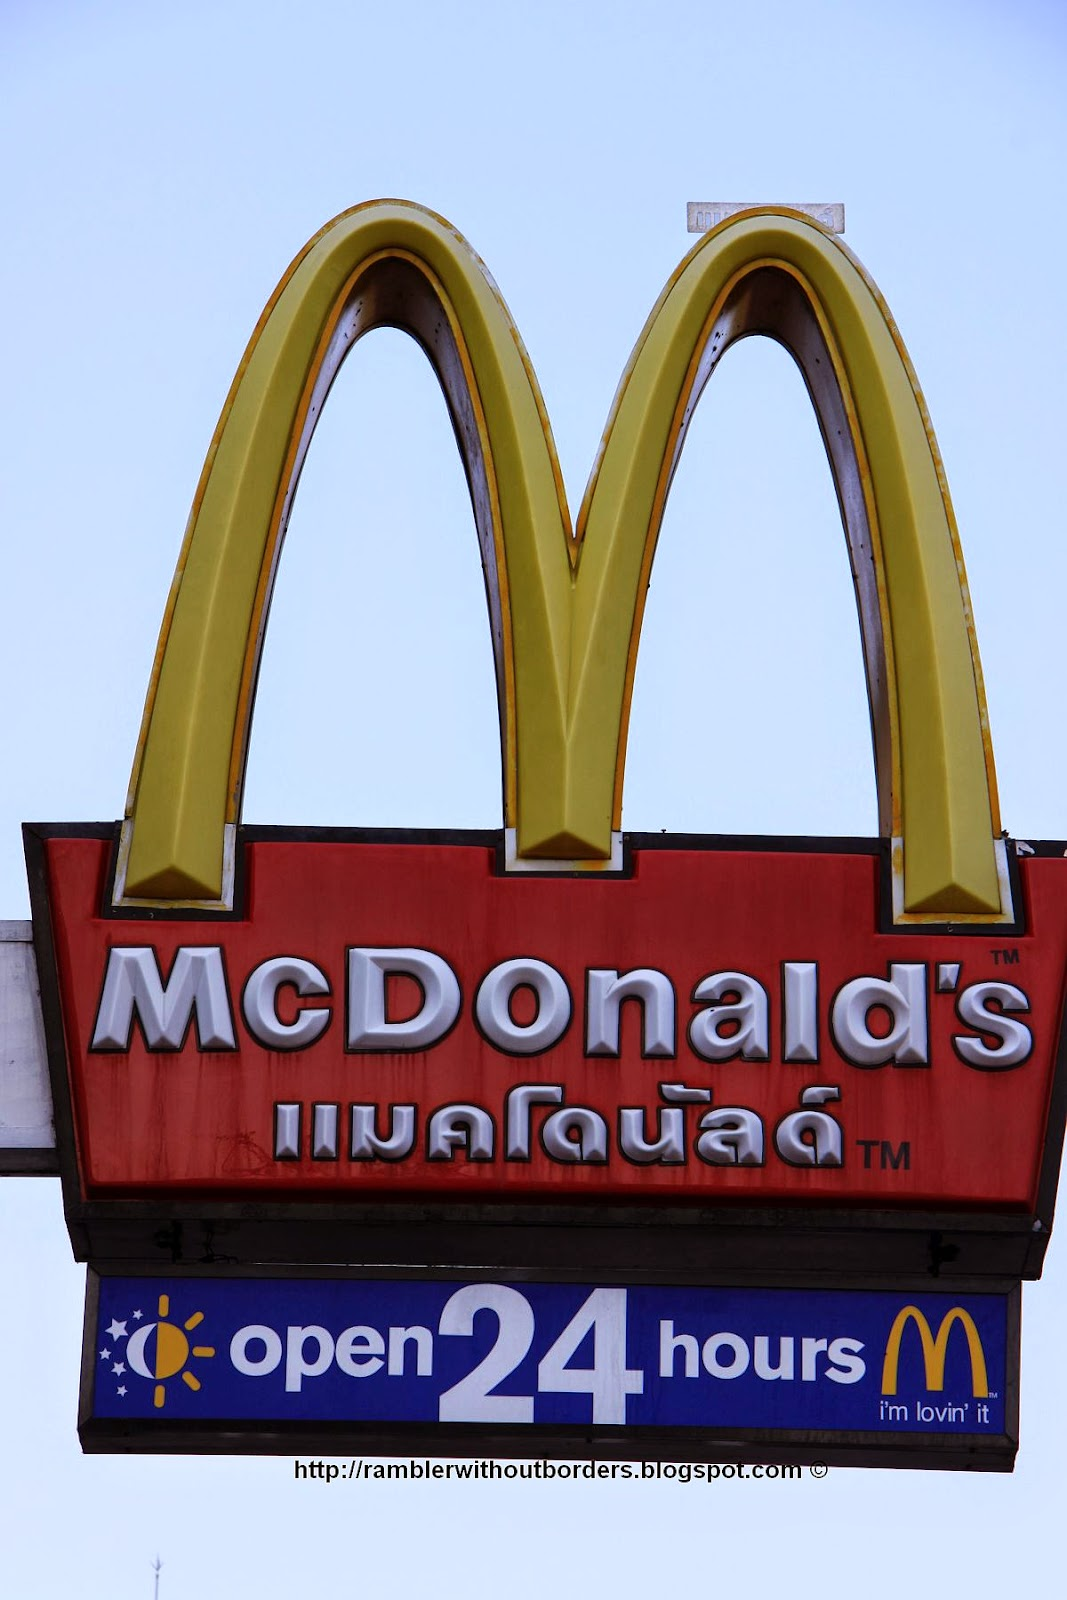 Mcdonald fastfood restaurant open 24 hours sign, Thailand